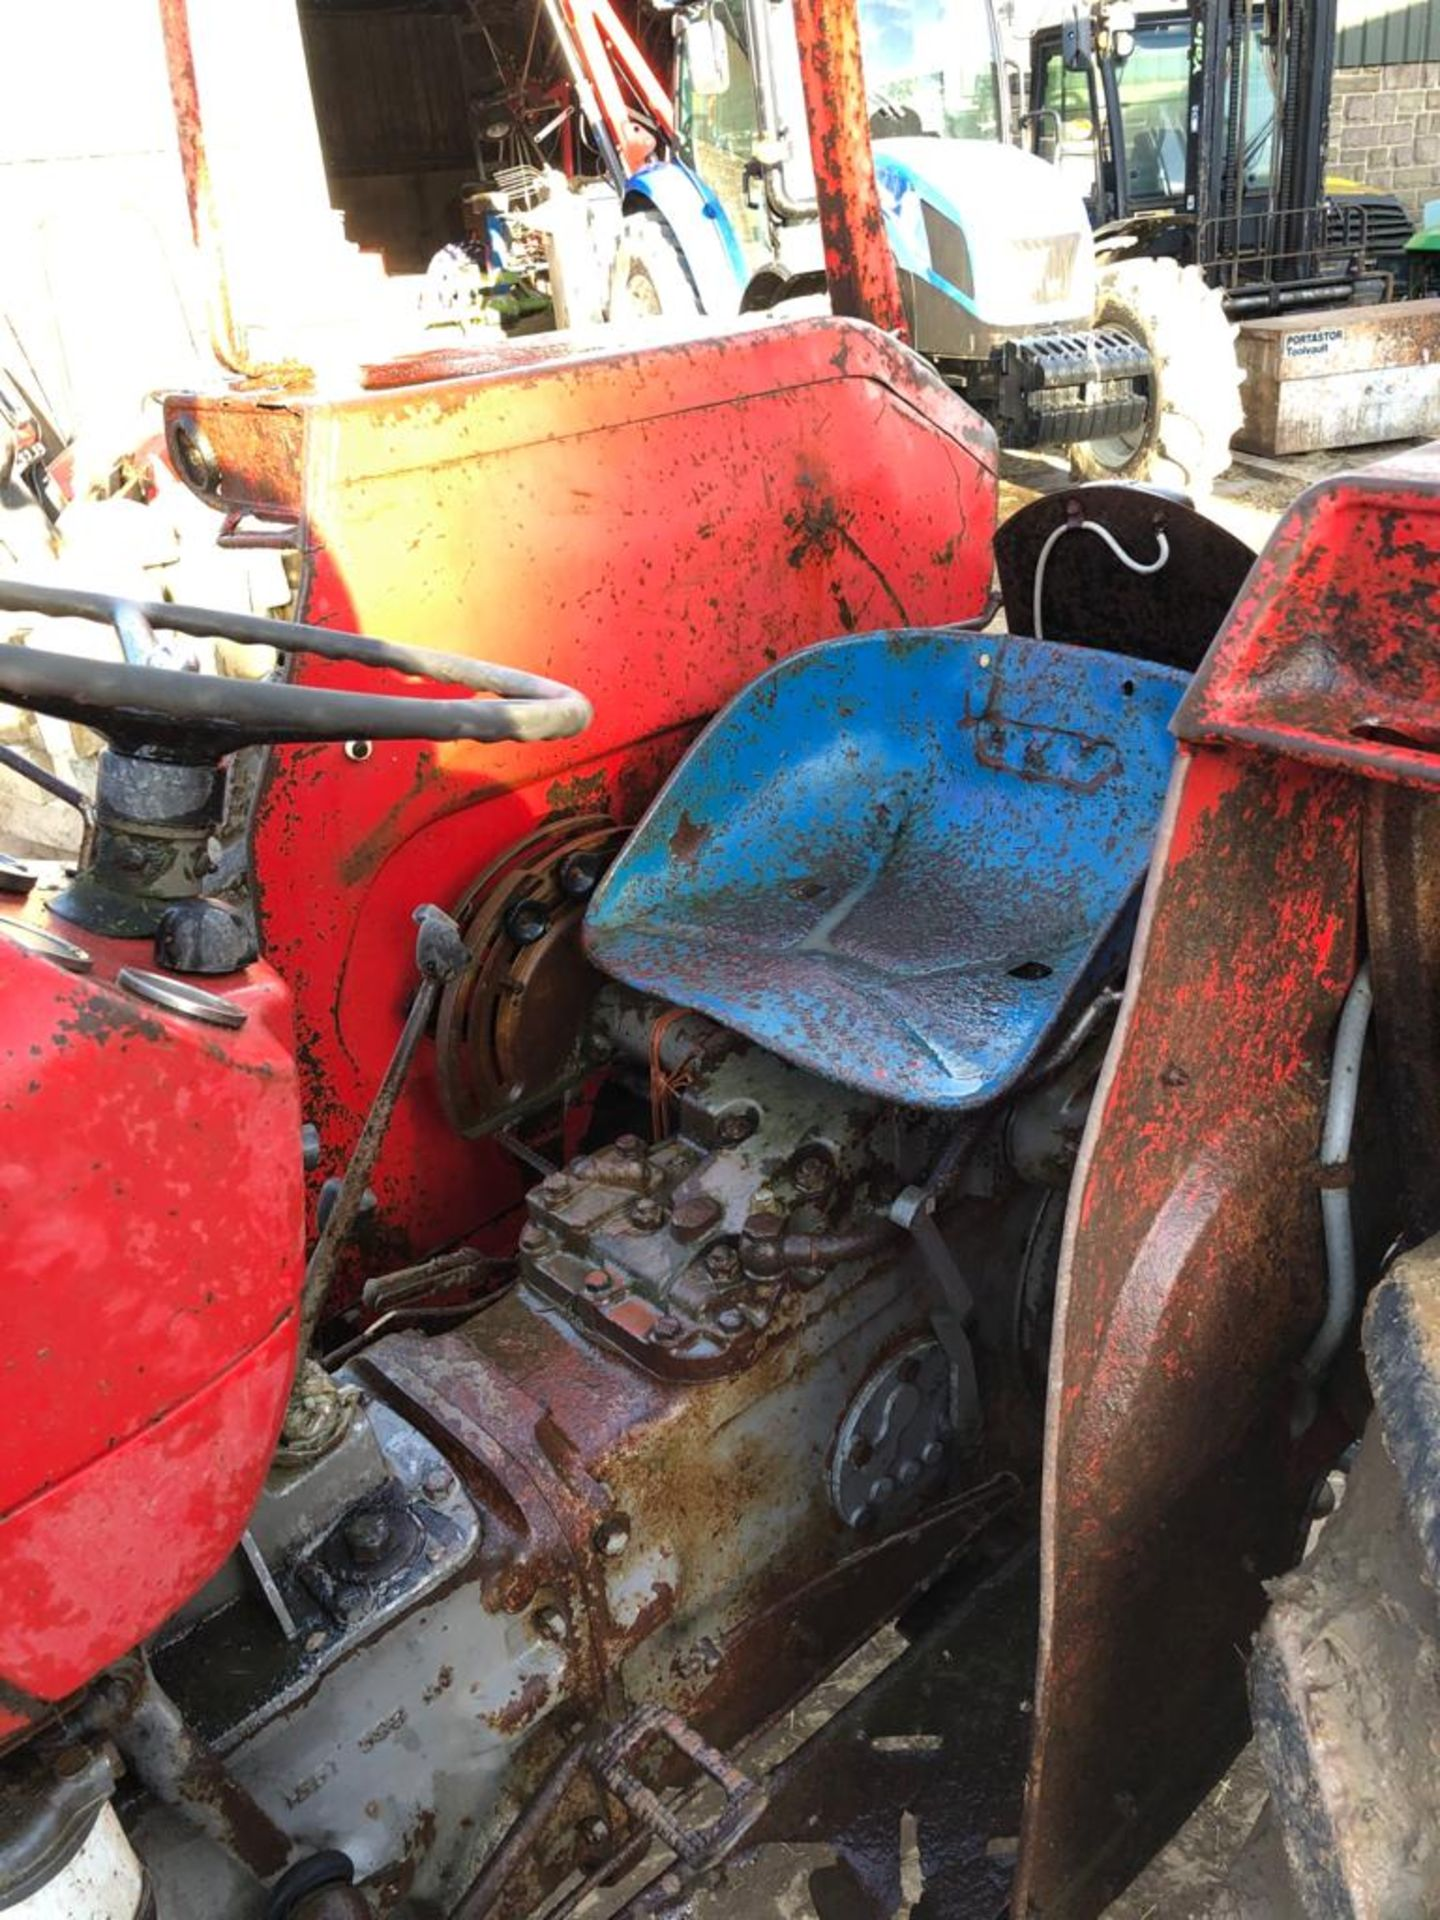 MASSEY FERGUSON 135 TRACTOR, RUNS AND WORKS WELL, REAR PTO, REAR 3 POINT LINKAGE *PLUS VAT* - Image 4 of 5